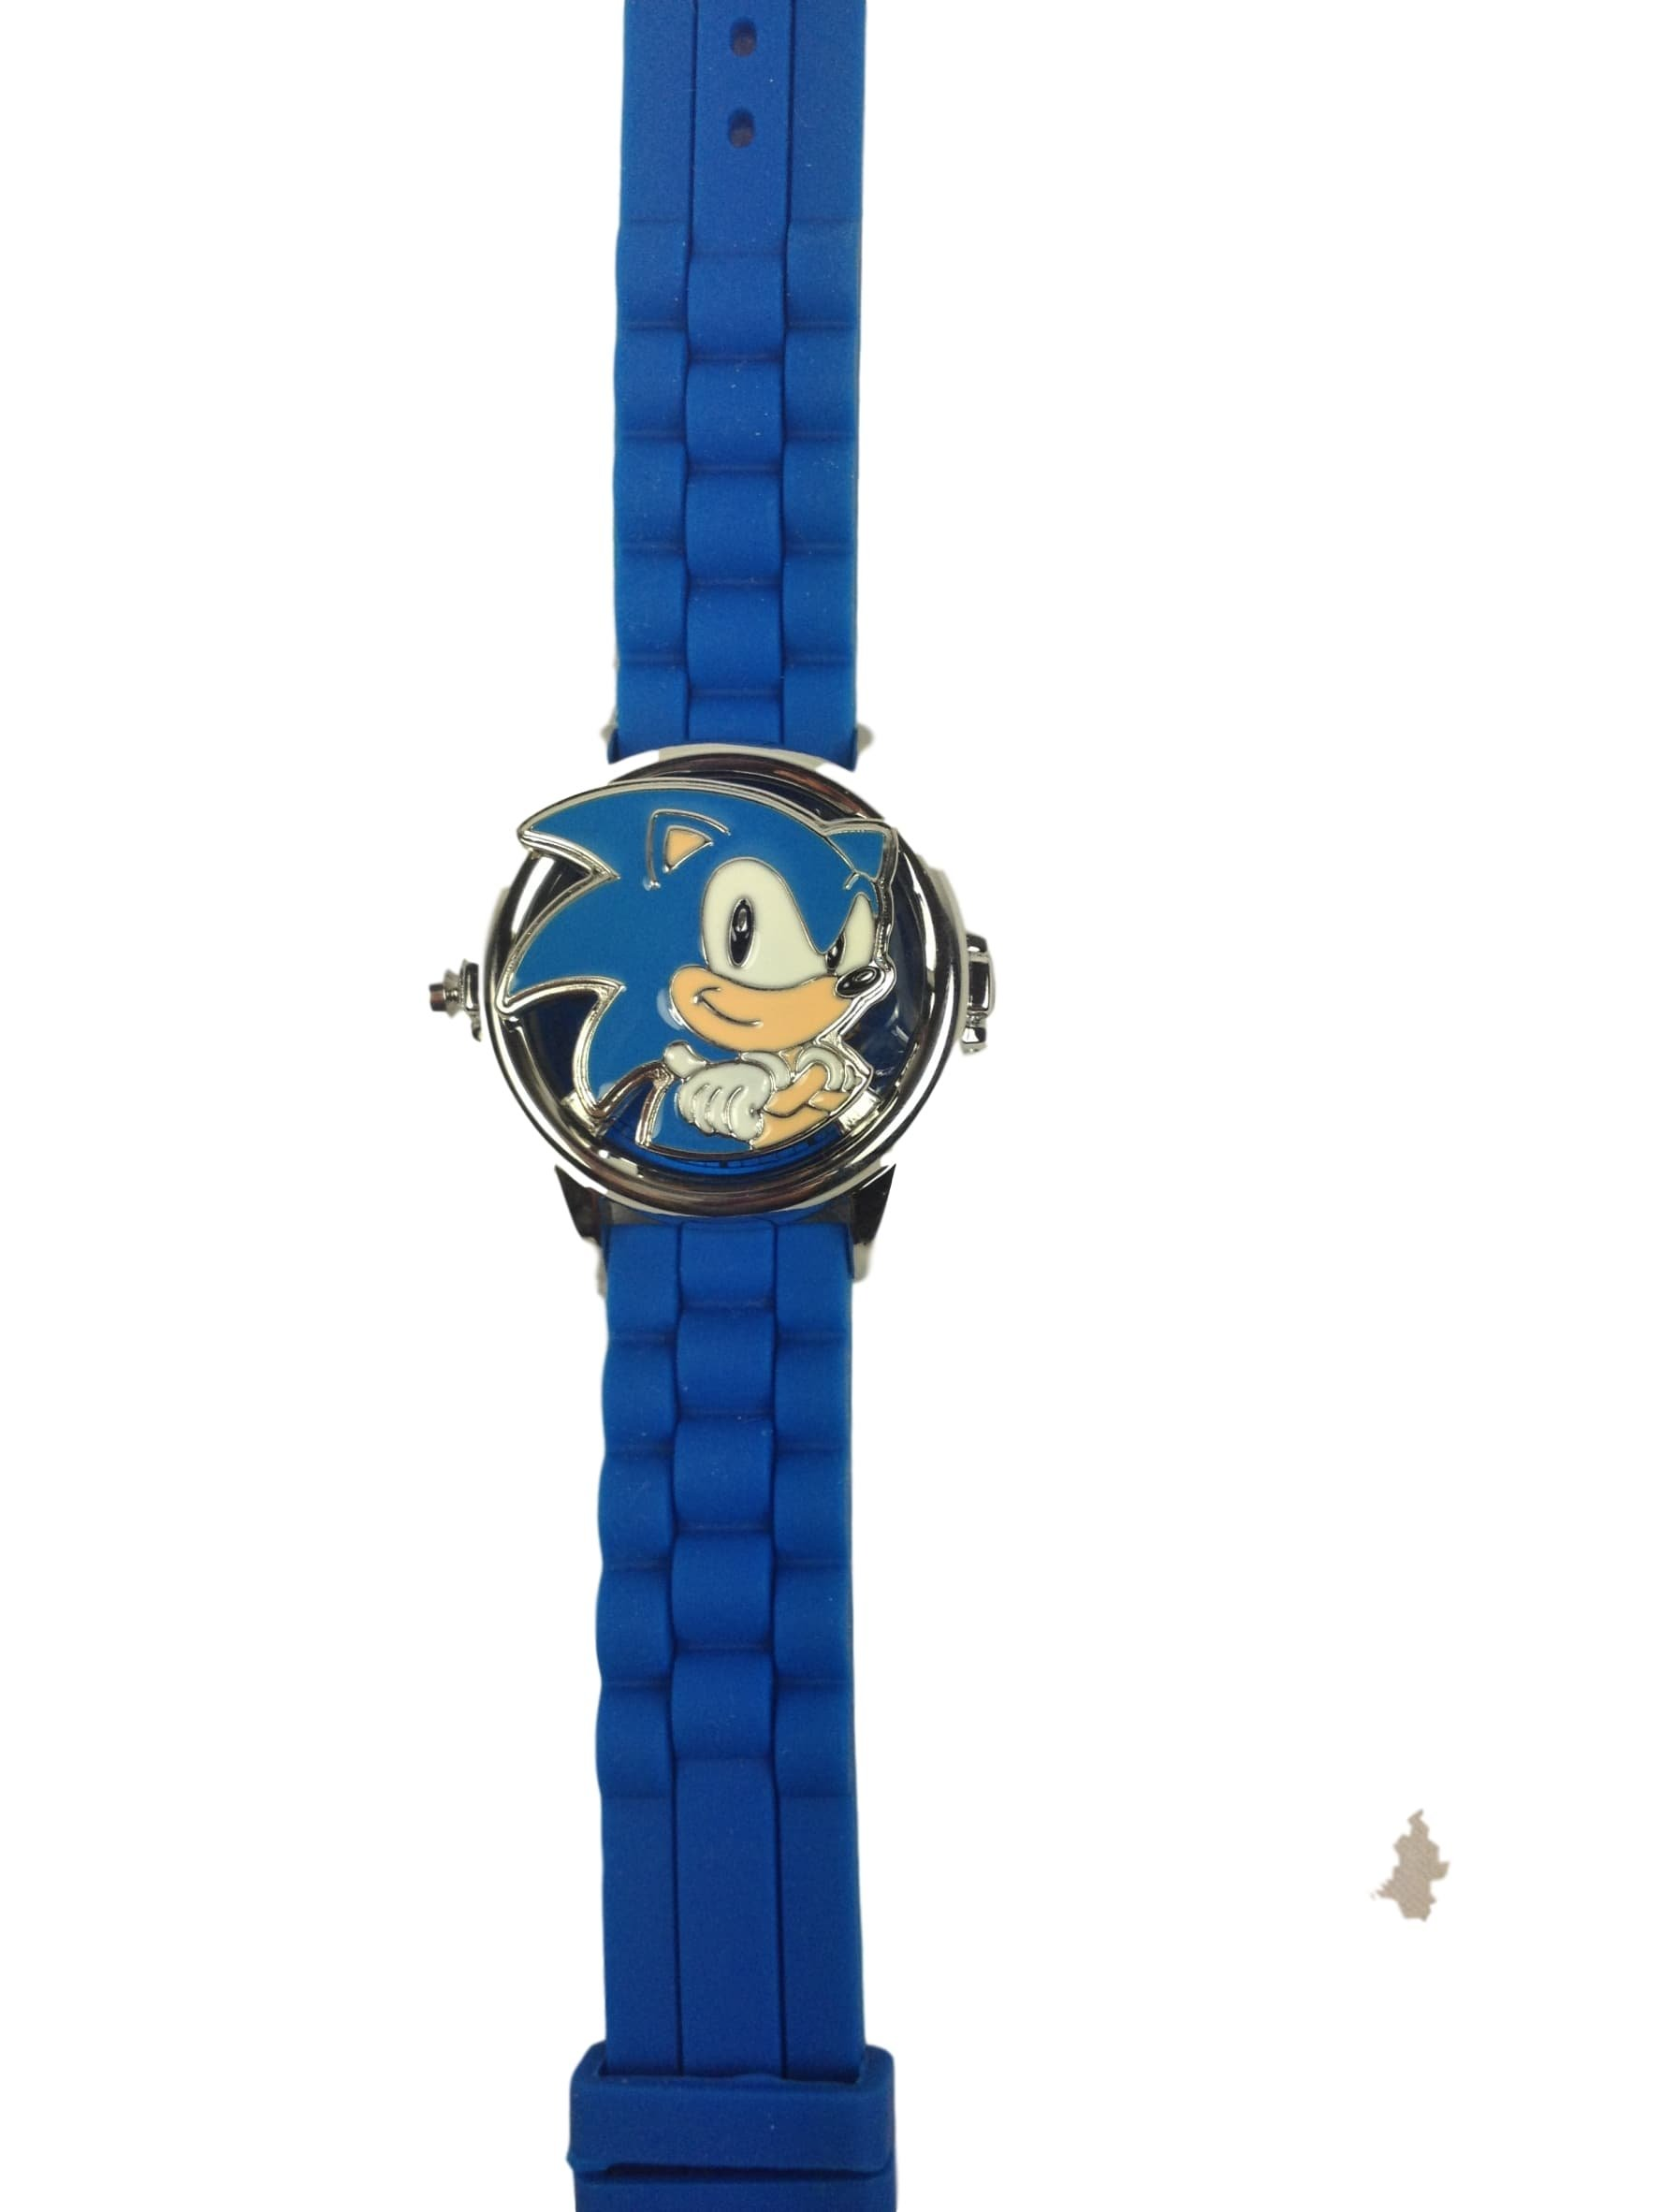 Sonic the Hedgehog Collector's Edition Spinner Watch